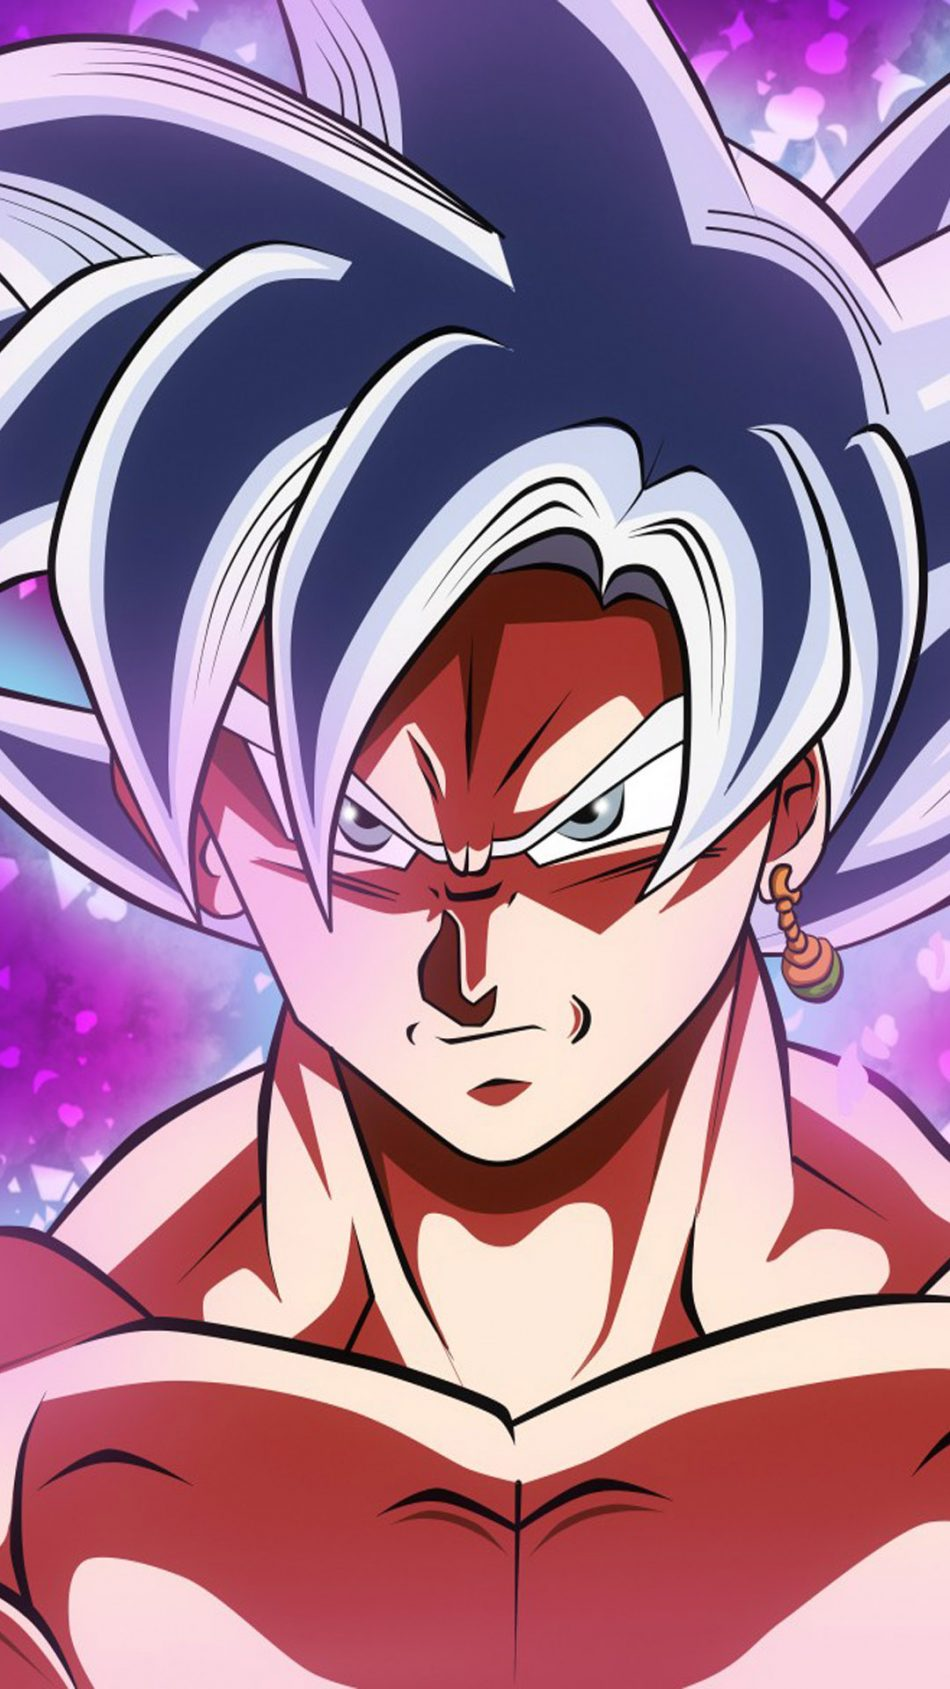 Goku Black Dragon Ball Super New 4k Ultra Hd Mobile Wallpaper